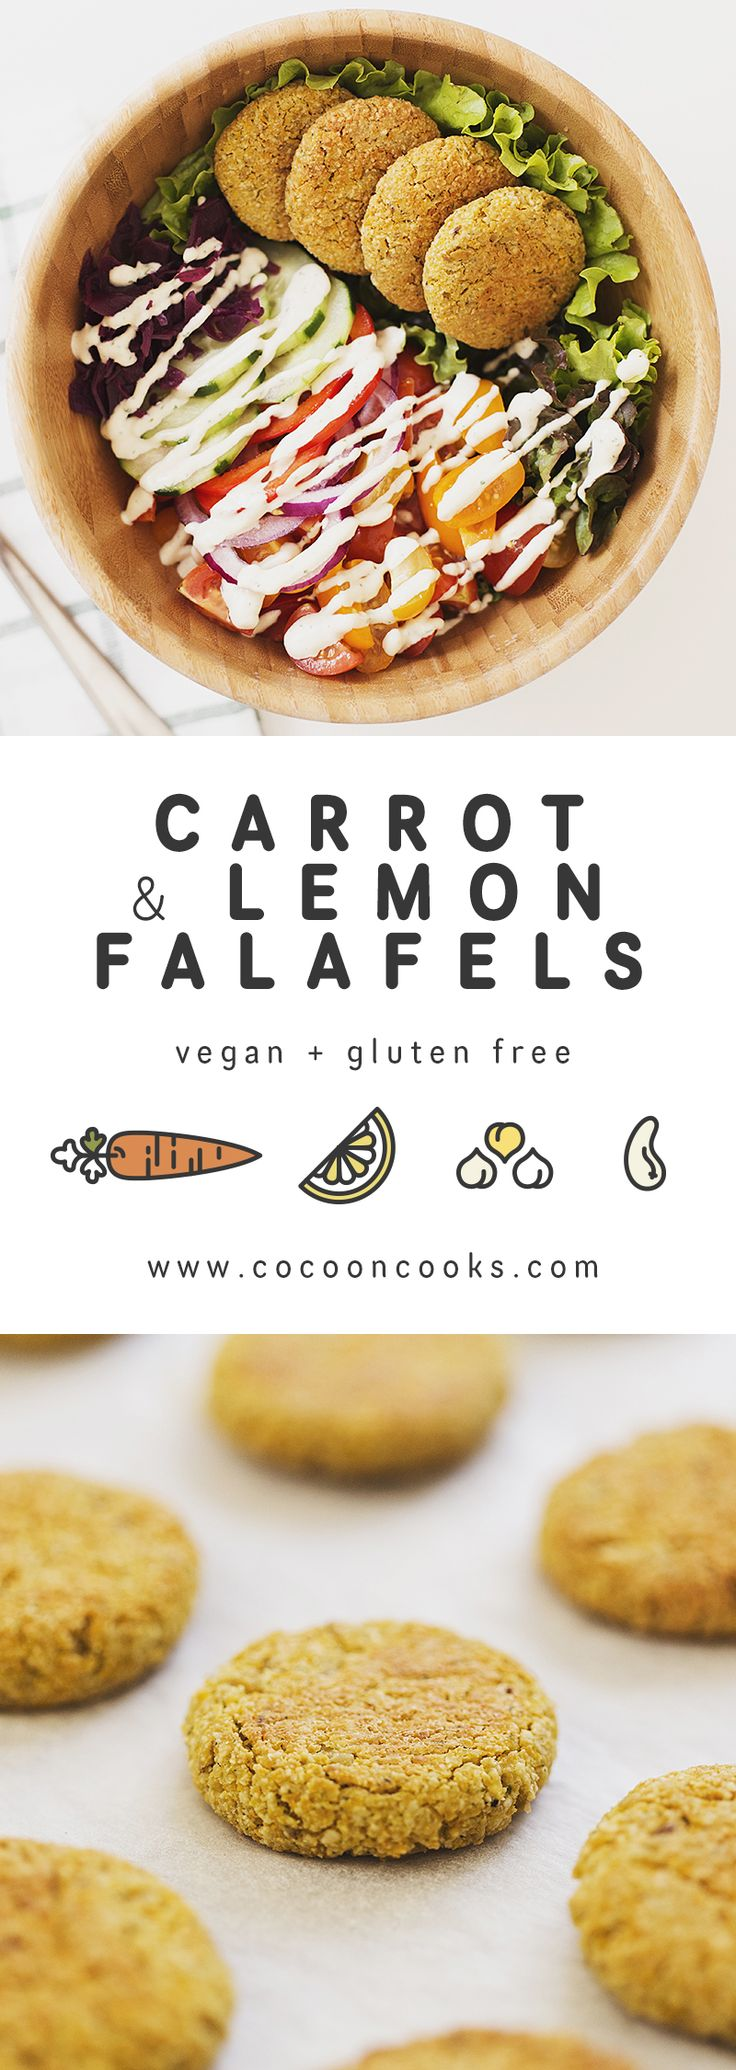 These baked falafels are 100% plantbased, crispy and delicious! Served in a big salad bowl drizzled with a Lemon & Tahini Dressing. #vegan #healthy #simple #recipe